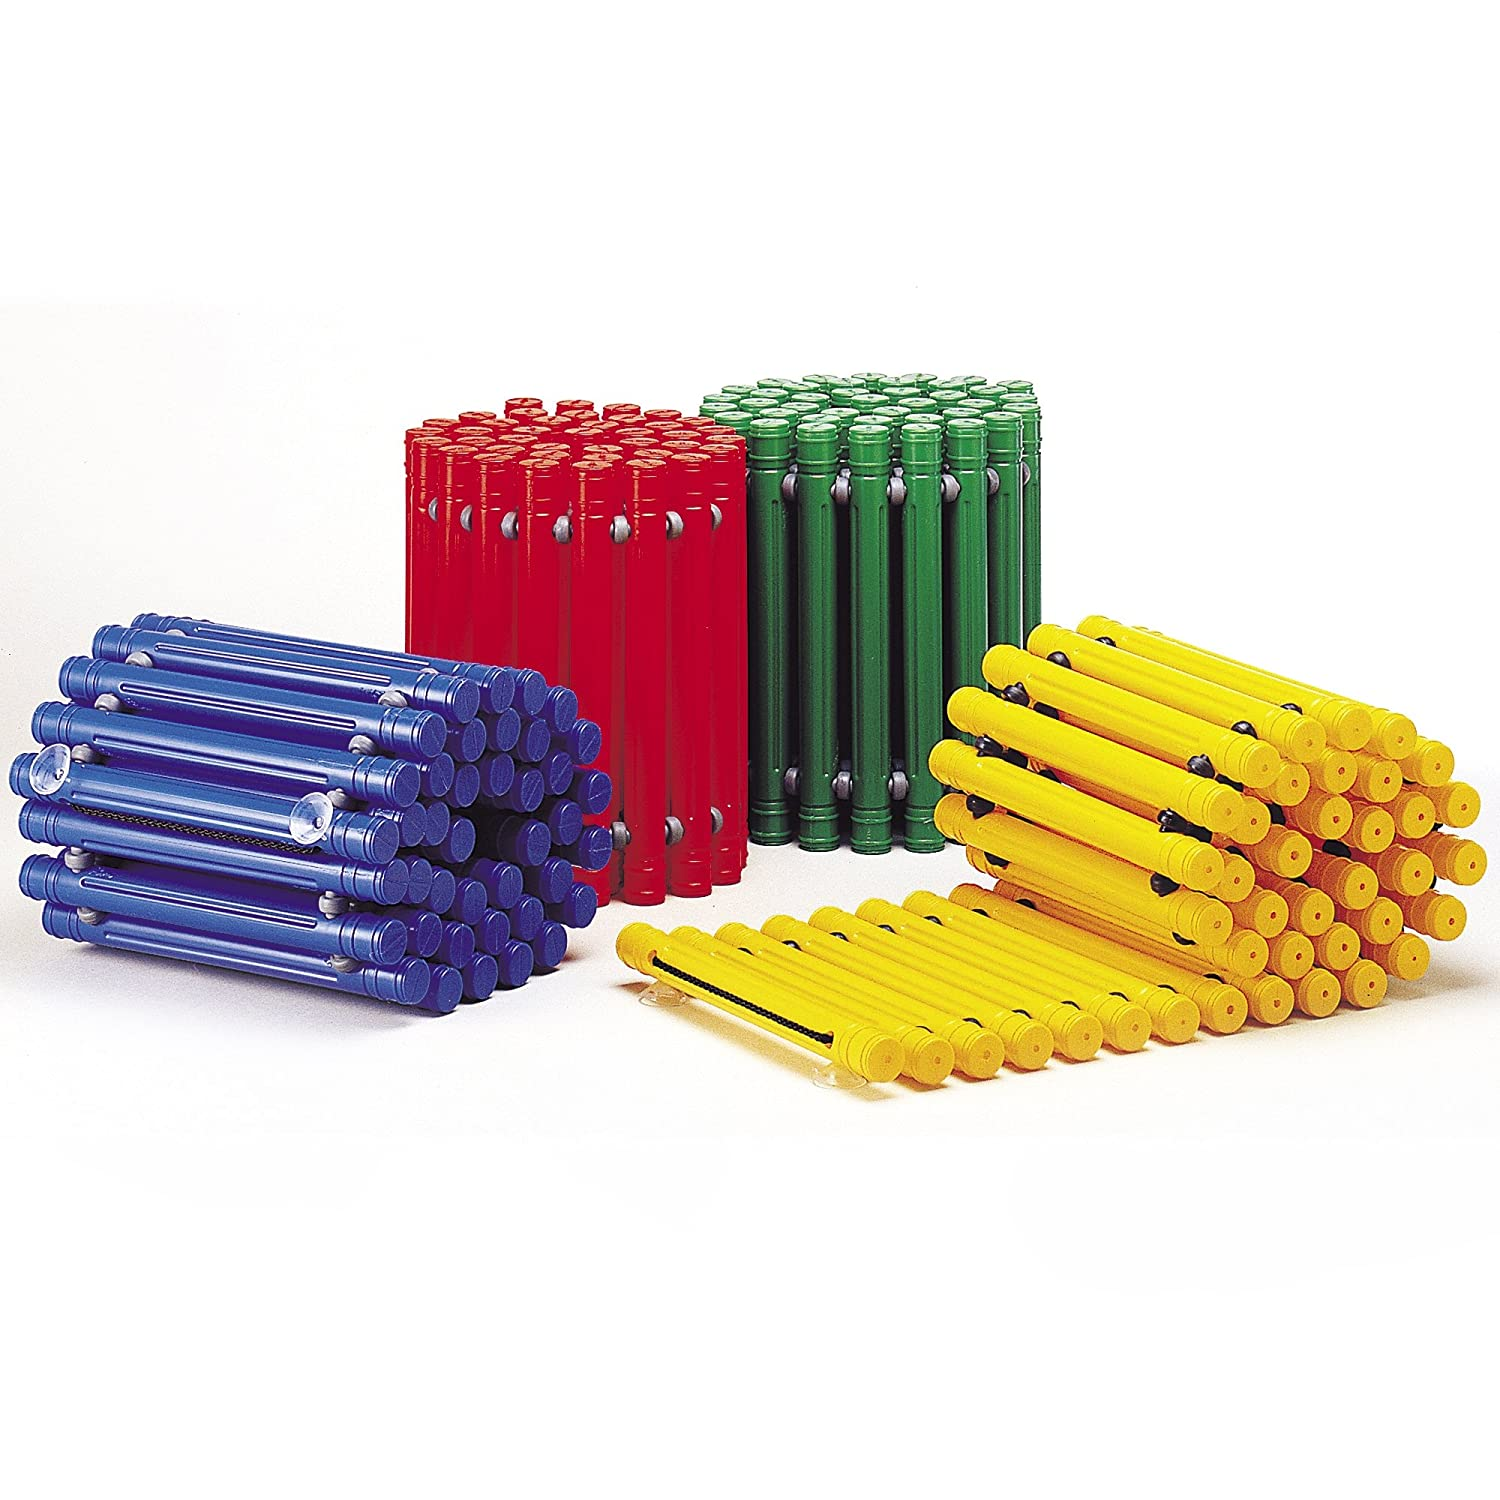 Weplay Balancierpfad Sprossenmatte, bunt 4er Set